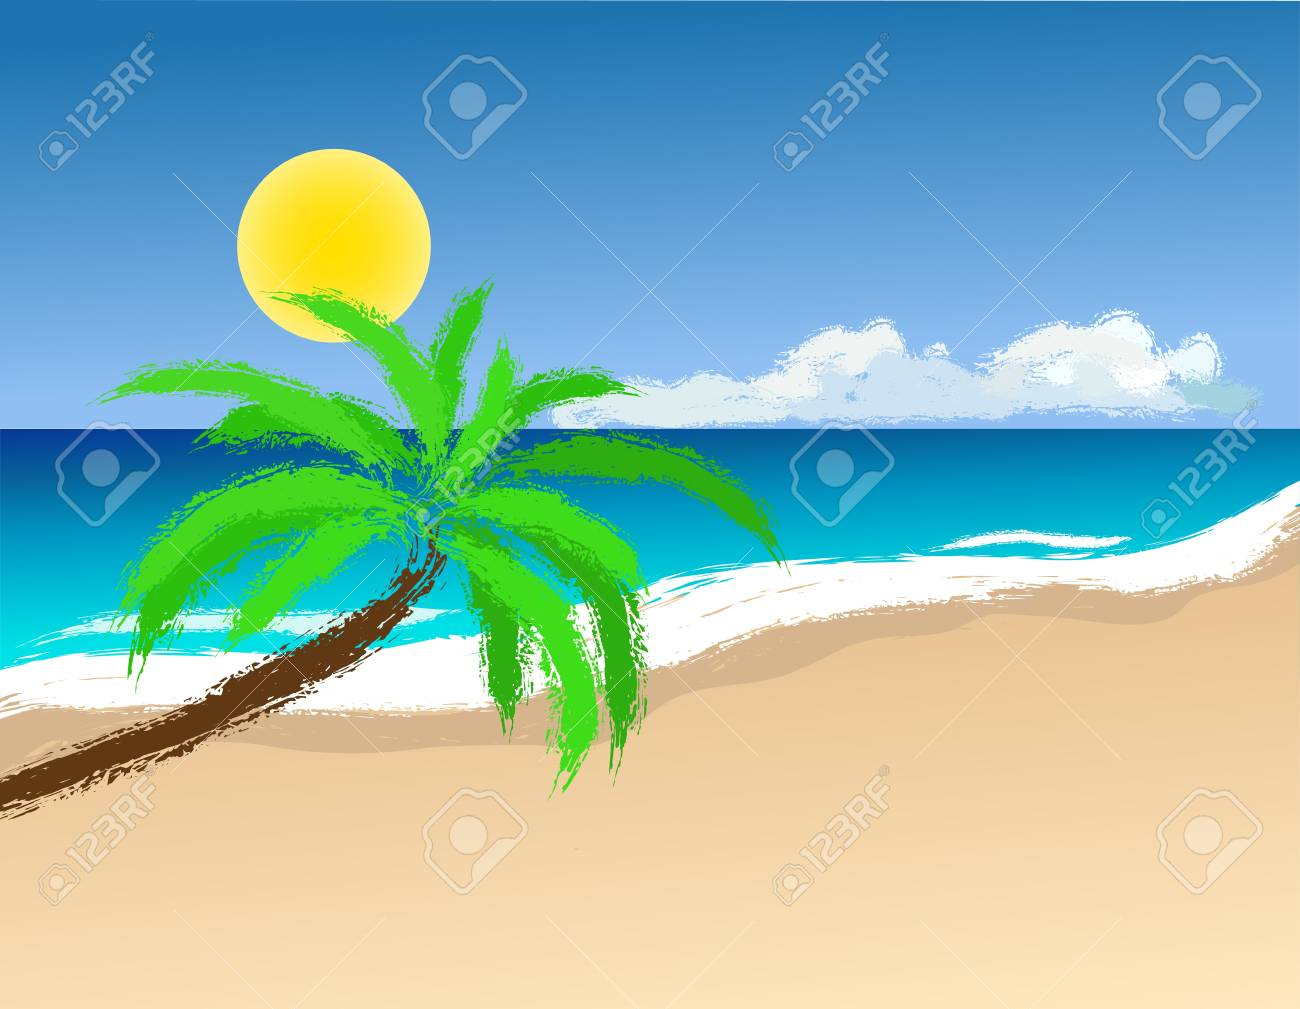 Palm trees on the beach. Vector image. Stock Vector - 20830501